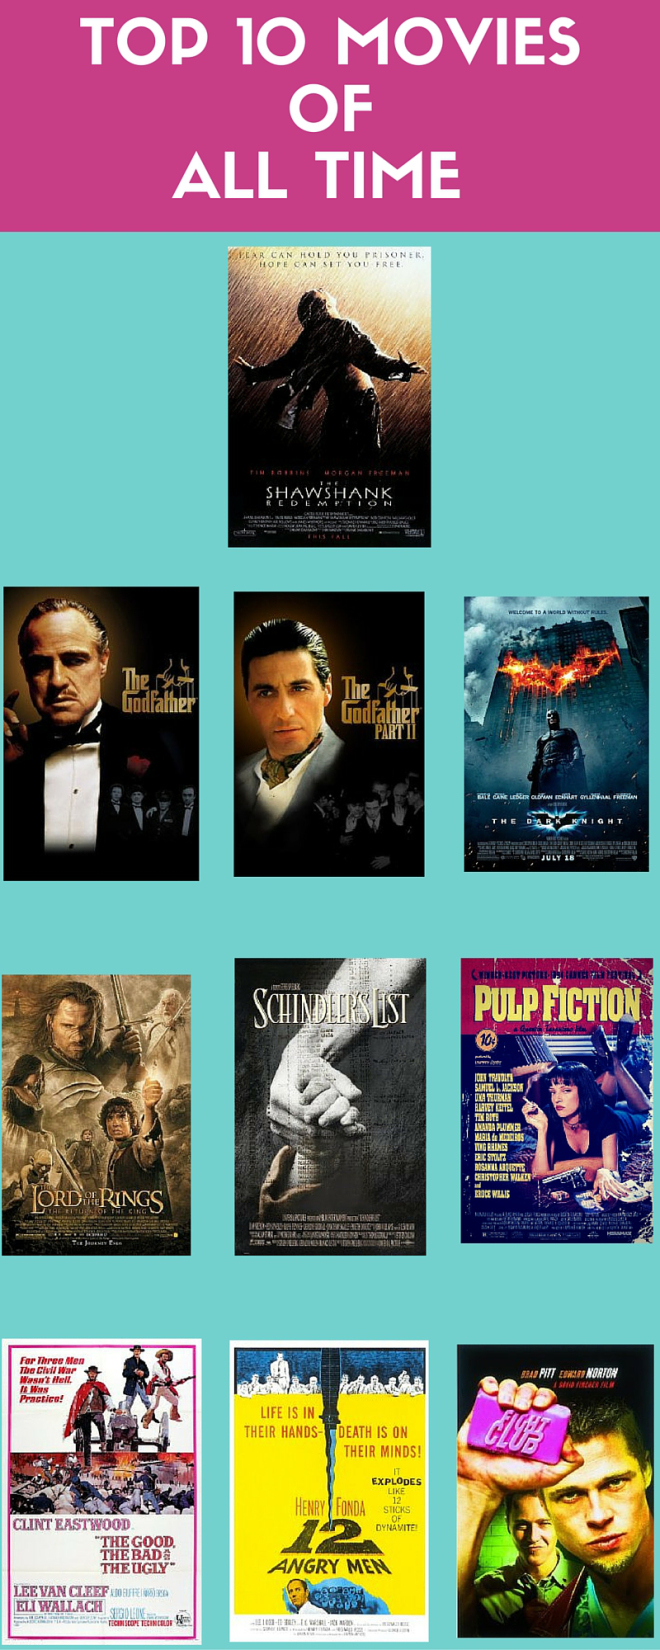 TOP 10 MOVIES OF ALL TIME ( IMDB RATING) | Visual.ly